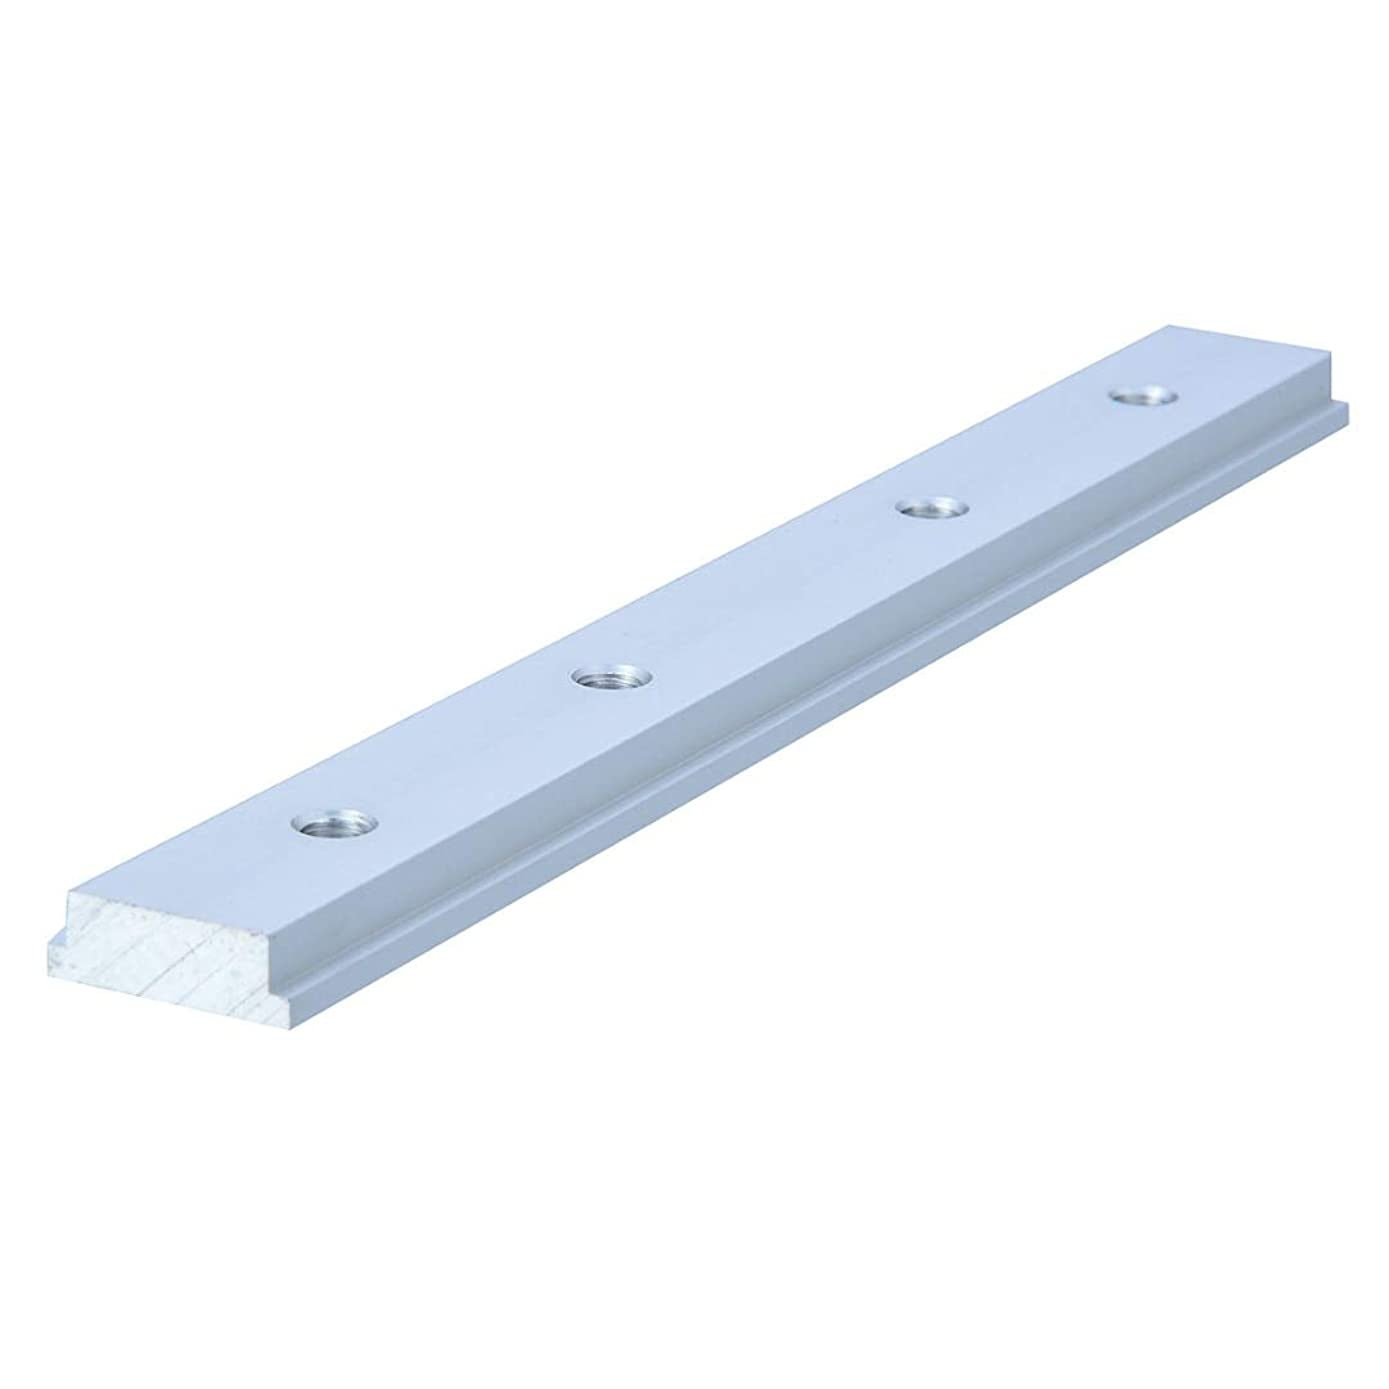 MEIZXIU M6 200mm Slide Slab T Track Slot for T-Slot T-Track Miter Track Fixture Slot Router Table Woodworking Tools